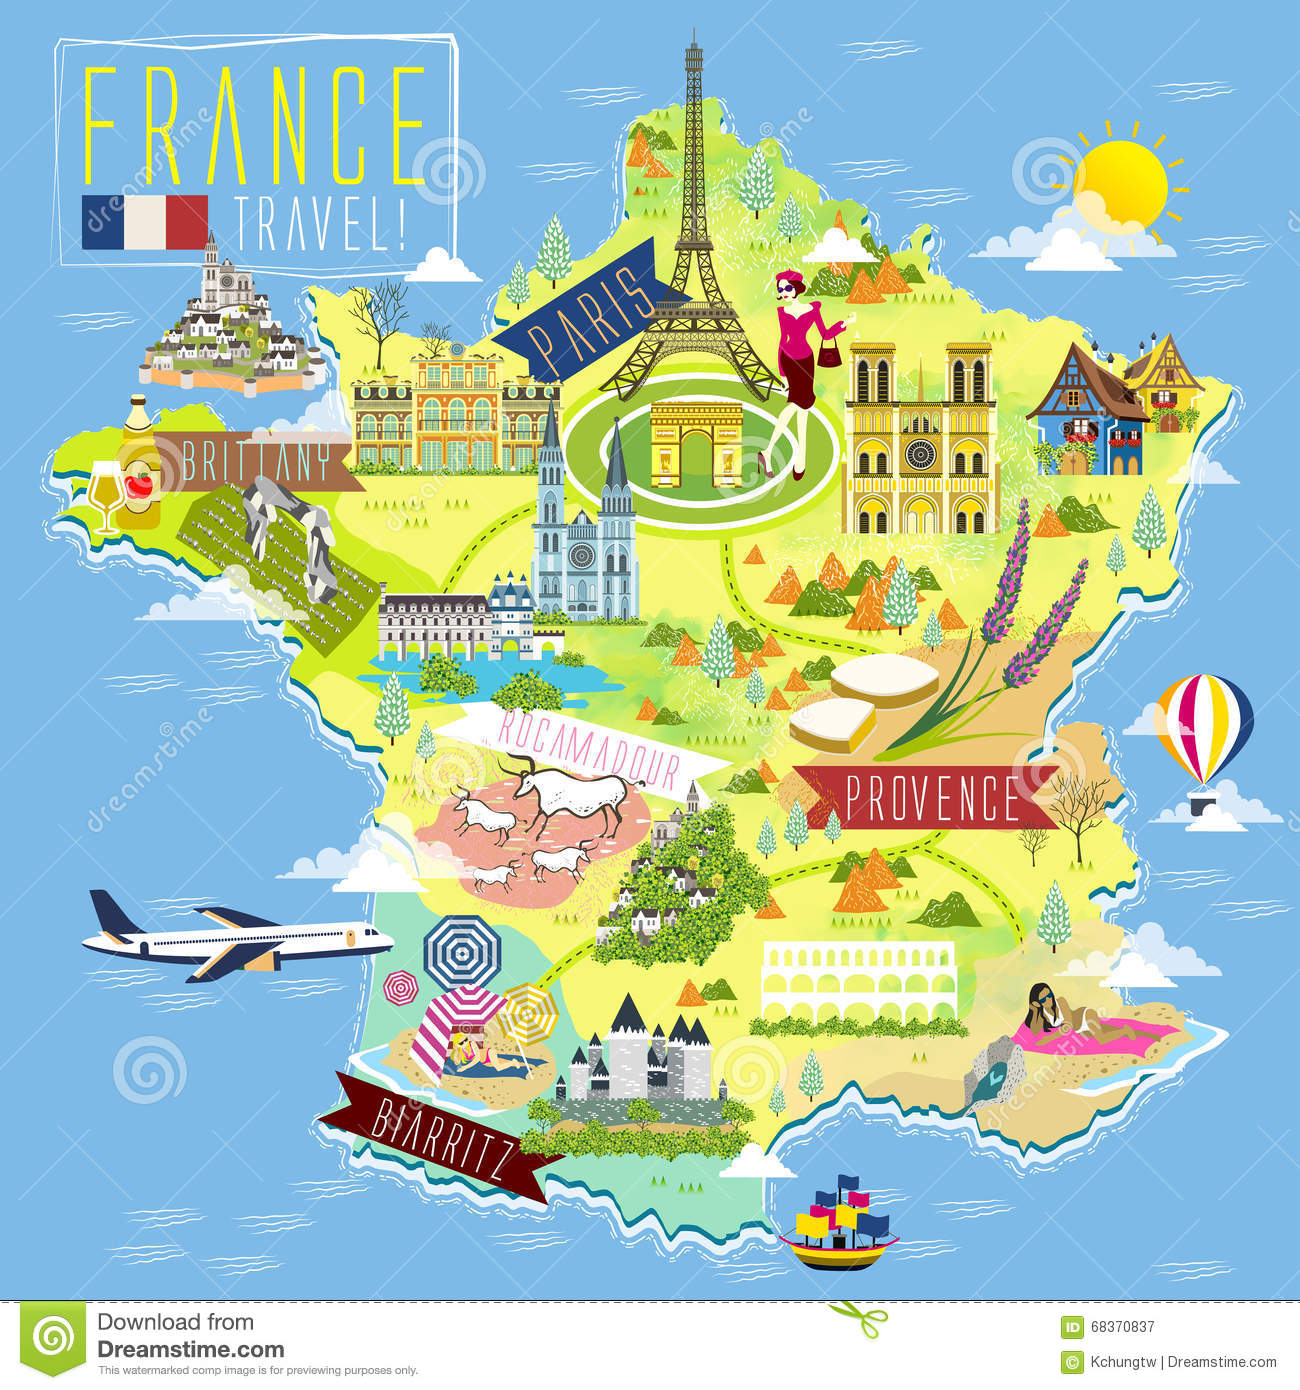 France Travel Map Vector Image 68370878 – France Tourist Attractions Map